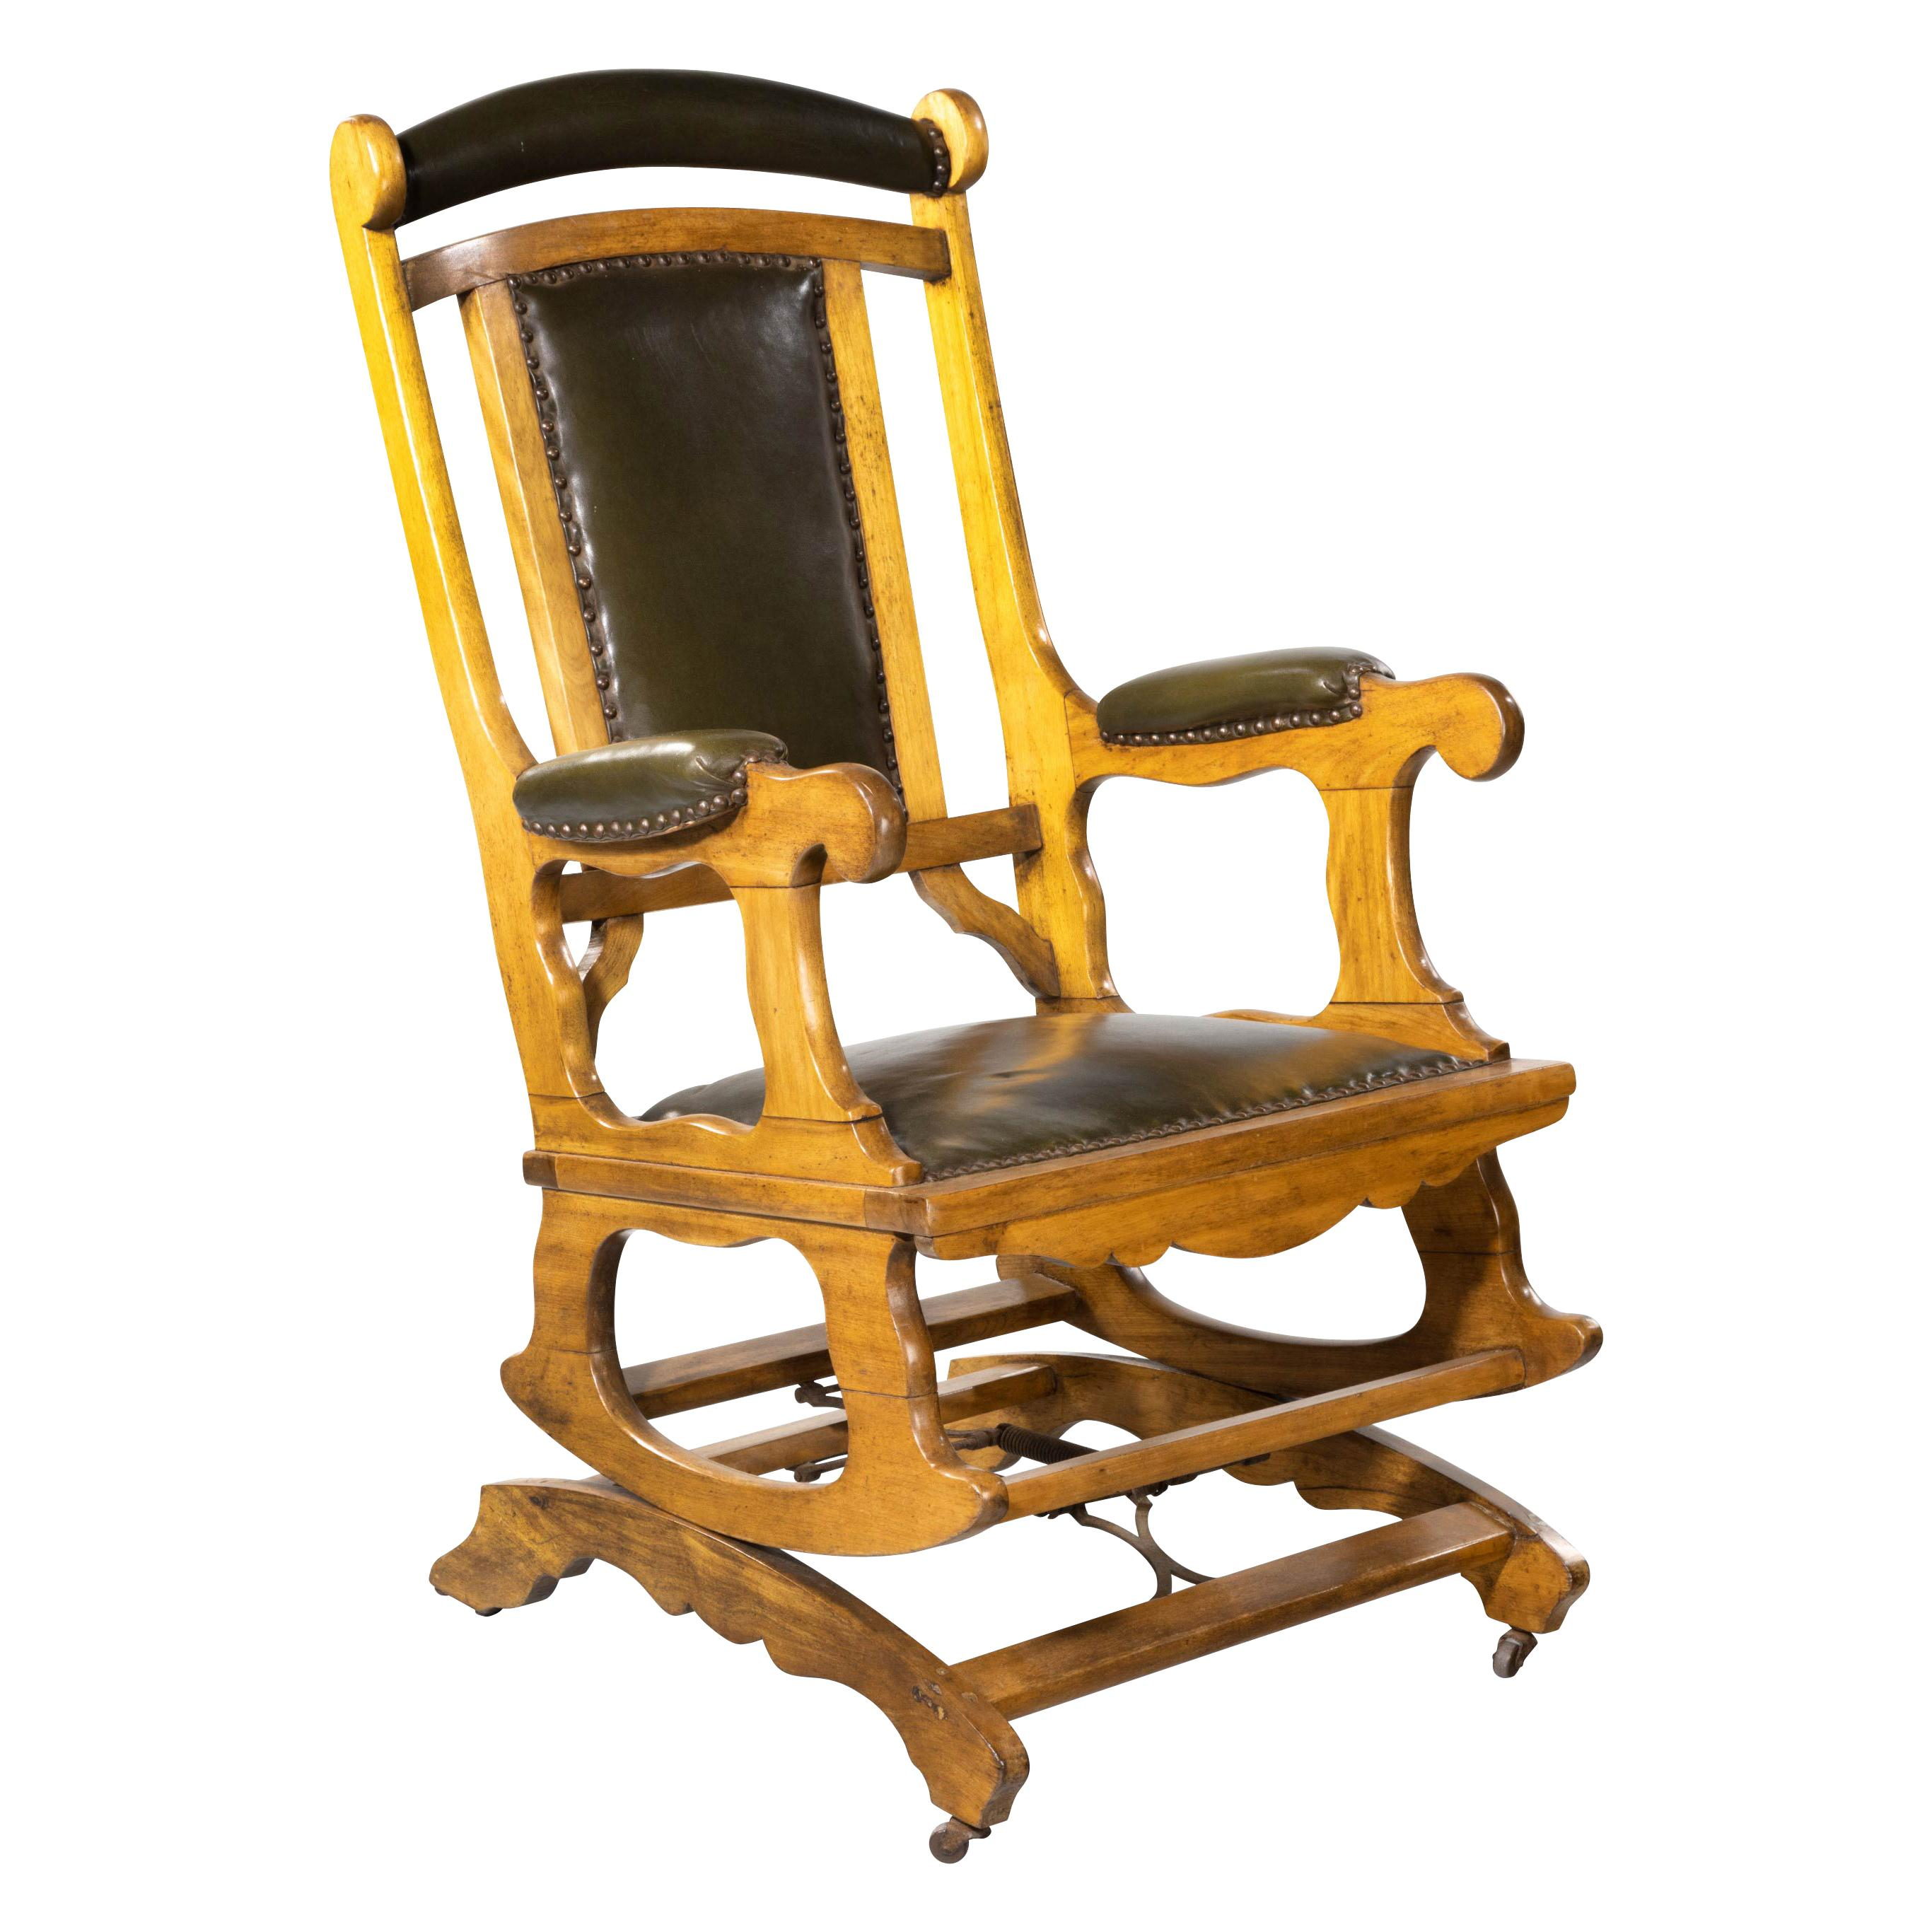 Awesome 19Th Century Rocking Chairs 78 For Sale At 1Stdibs Andrewgaddart Wooden Chair Designs For Living Room Andrewgaddartcom